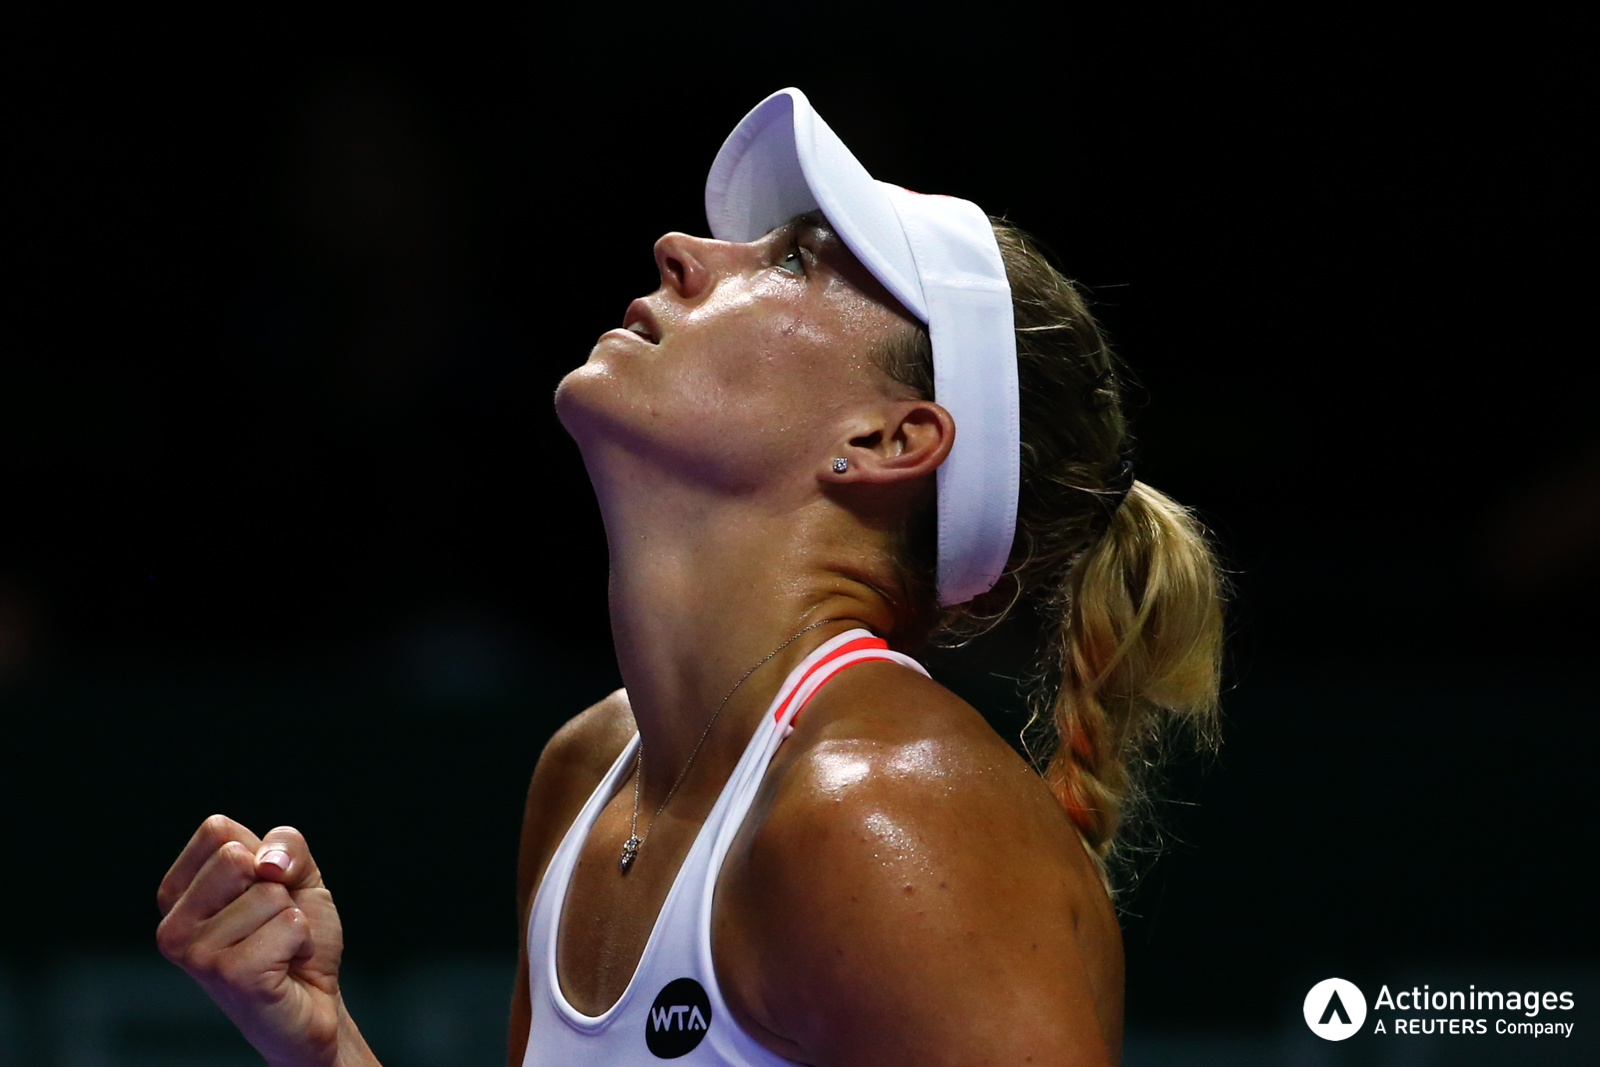 Tennis - BNP Paribas WTA Finals - Singapore Indoor Stadium - 25/10/16 Germany's Angelique Kerber celebrates during her round robin match Mandatory Credit: Action Images / Yong Teck Lim Livepic